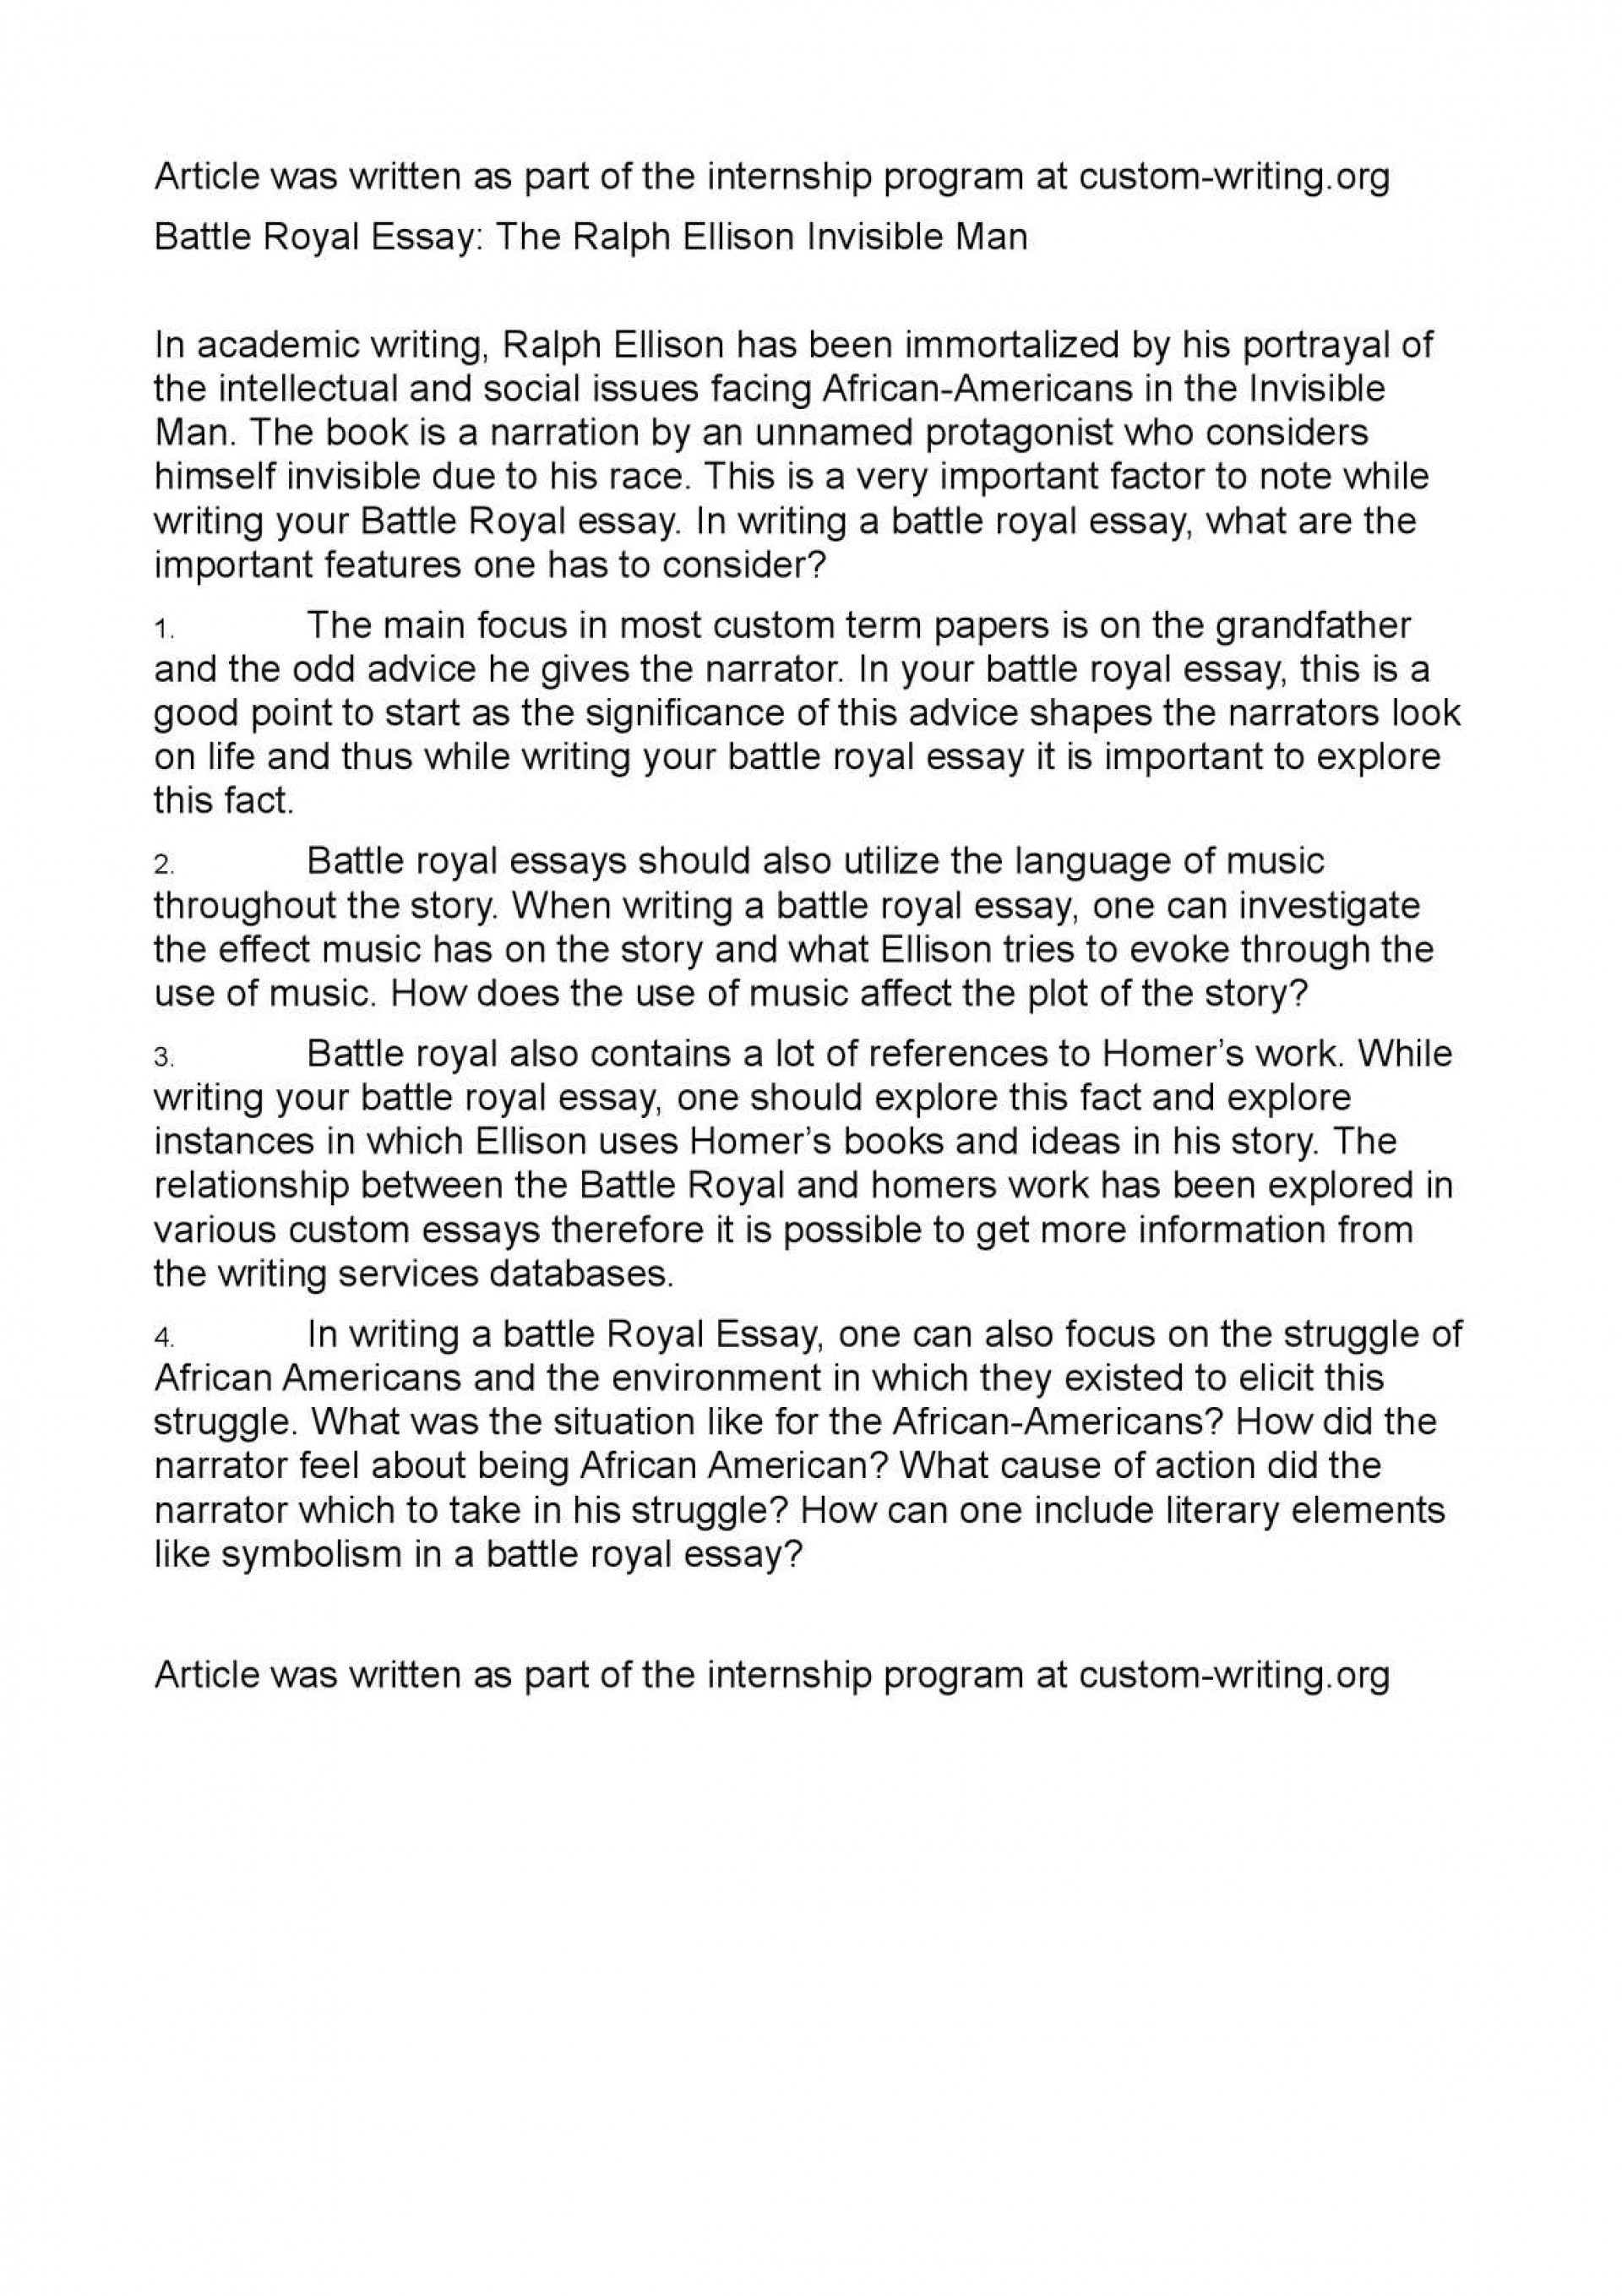 008 Battle Royal Essay Questions Summary Royale Research Paper Topics Argumentative20 Striking Literature American Ideas English History 1920